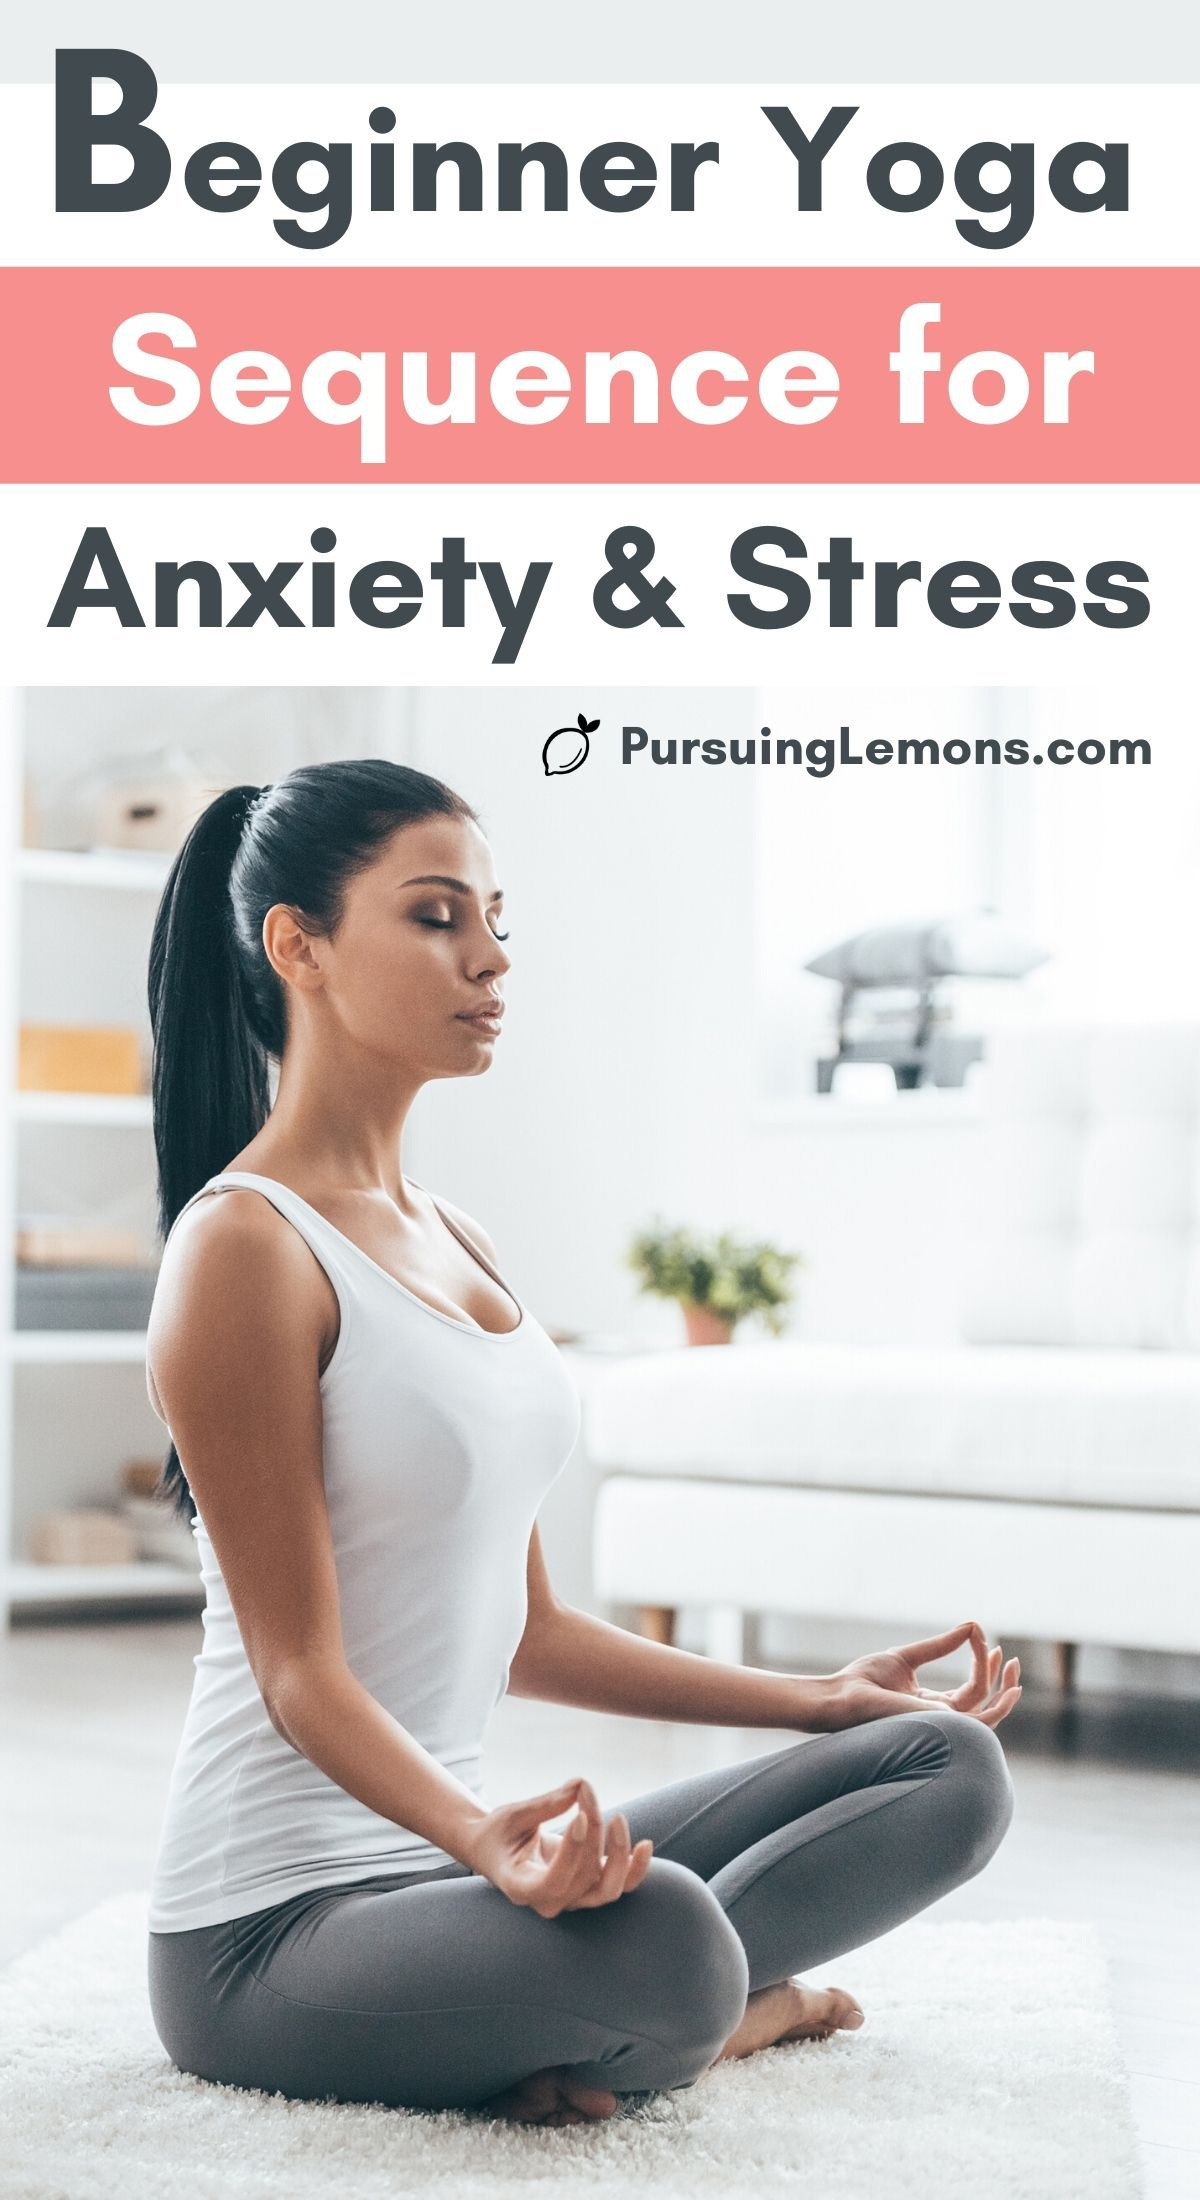 Beginners Yoga Sequence for Anxiety and Stress (2020)